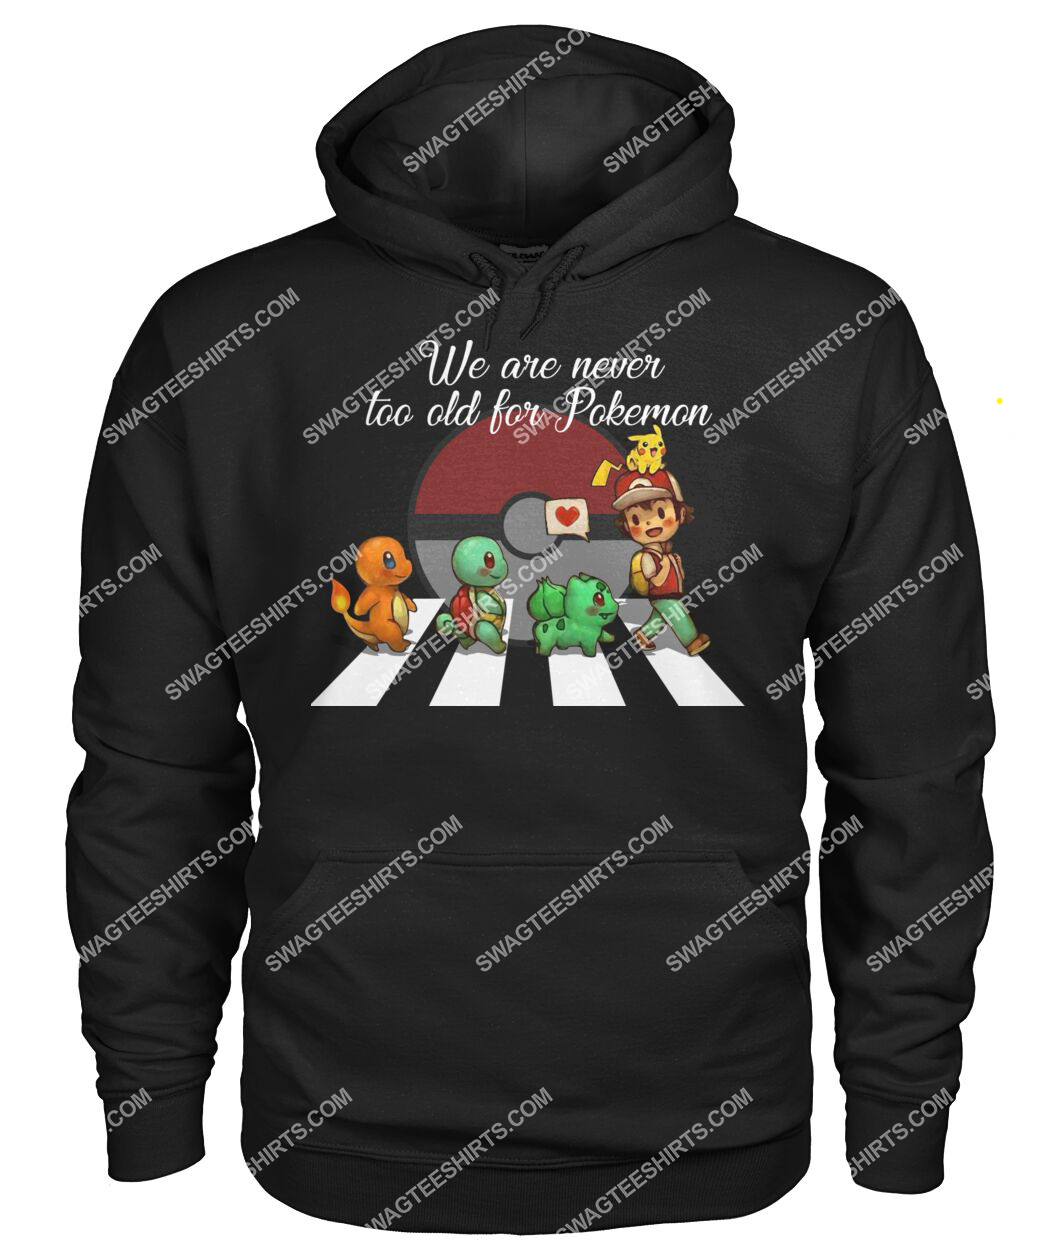 we are never too old for pokemon abbey road hoodie 1